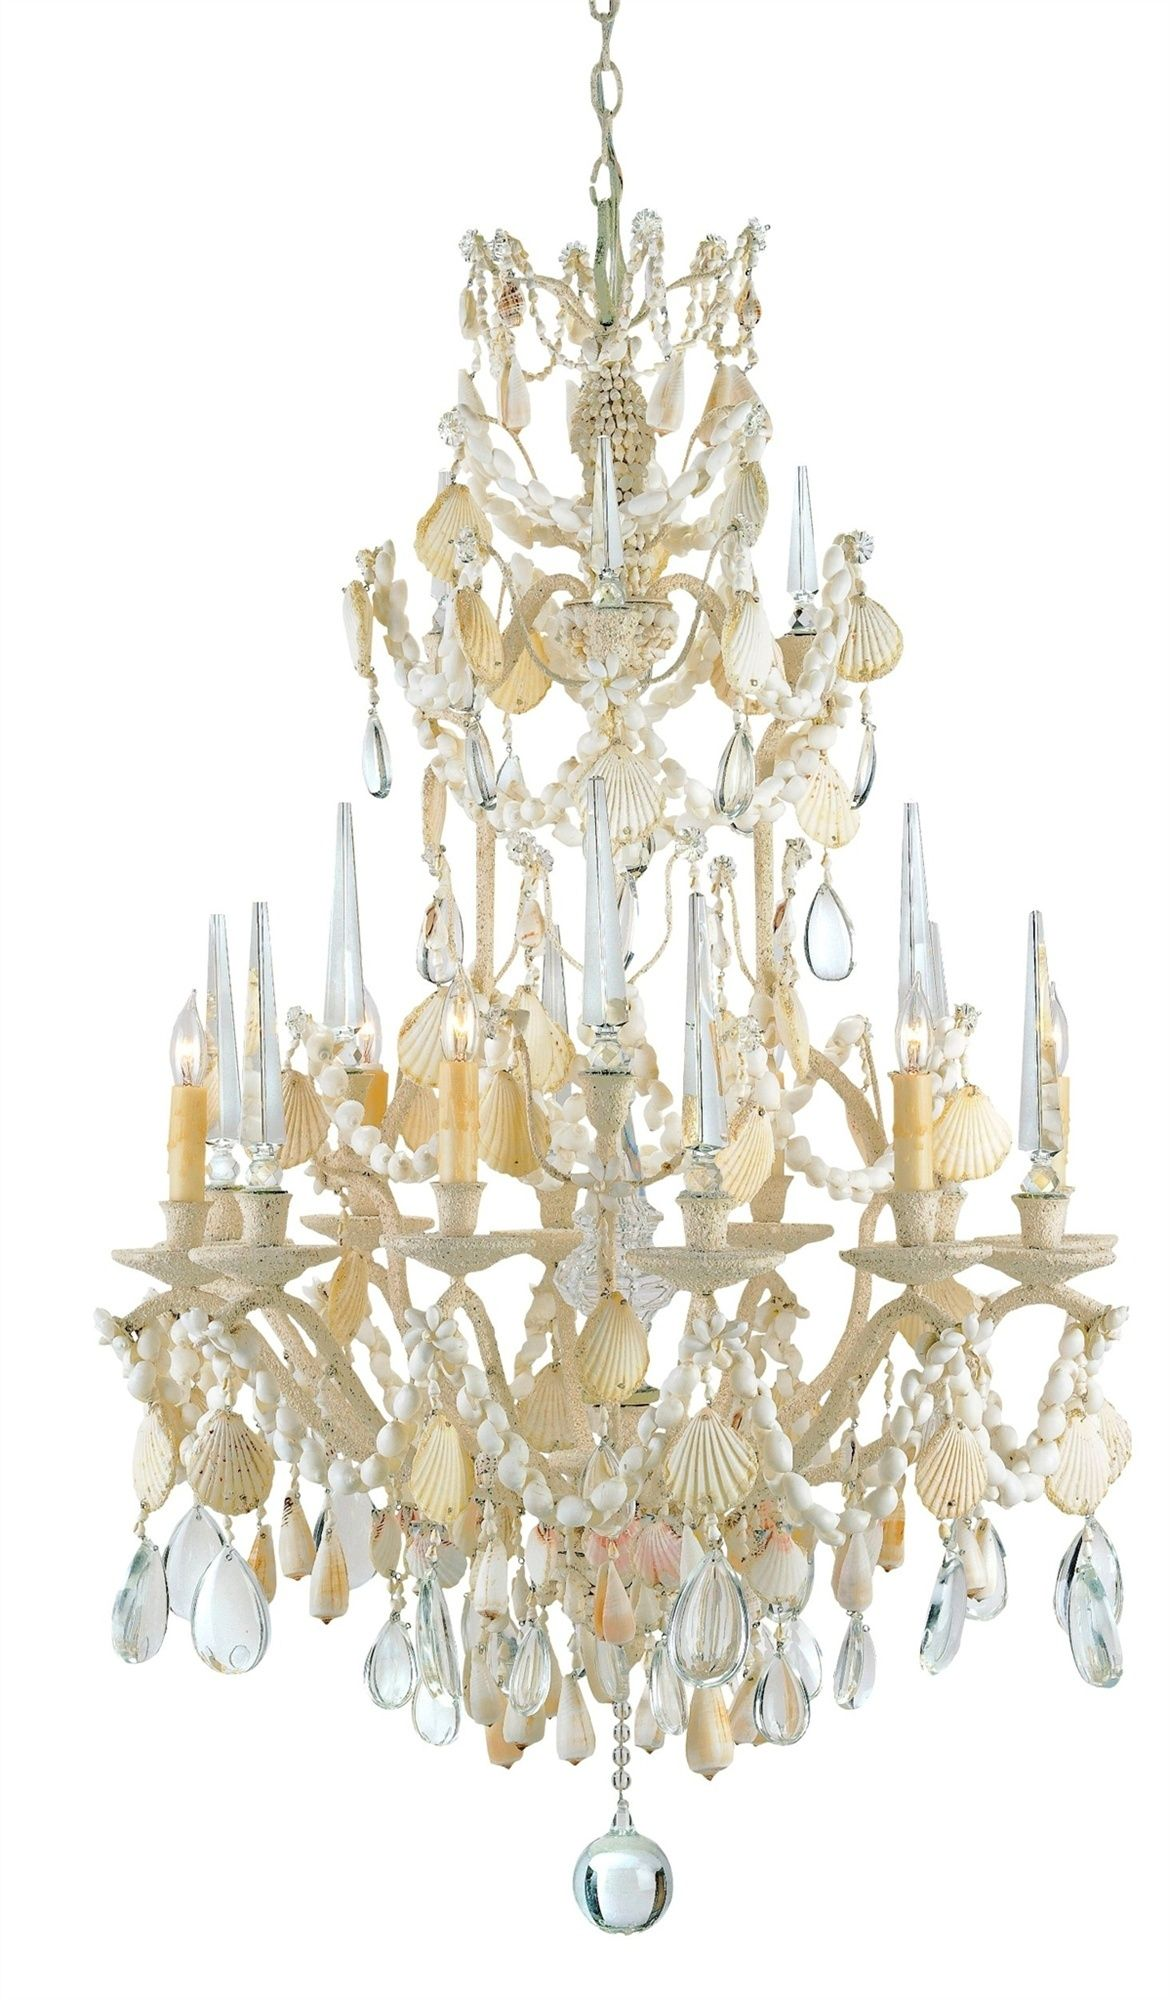 Buttermere Small Chandelier